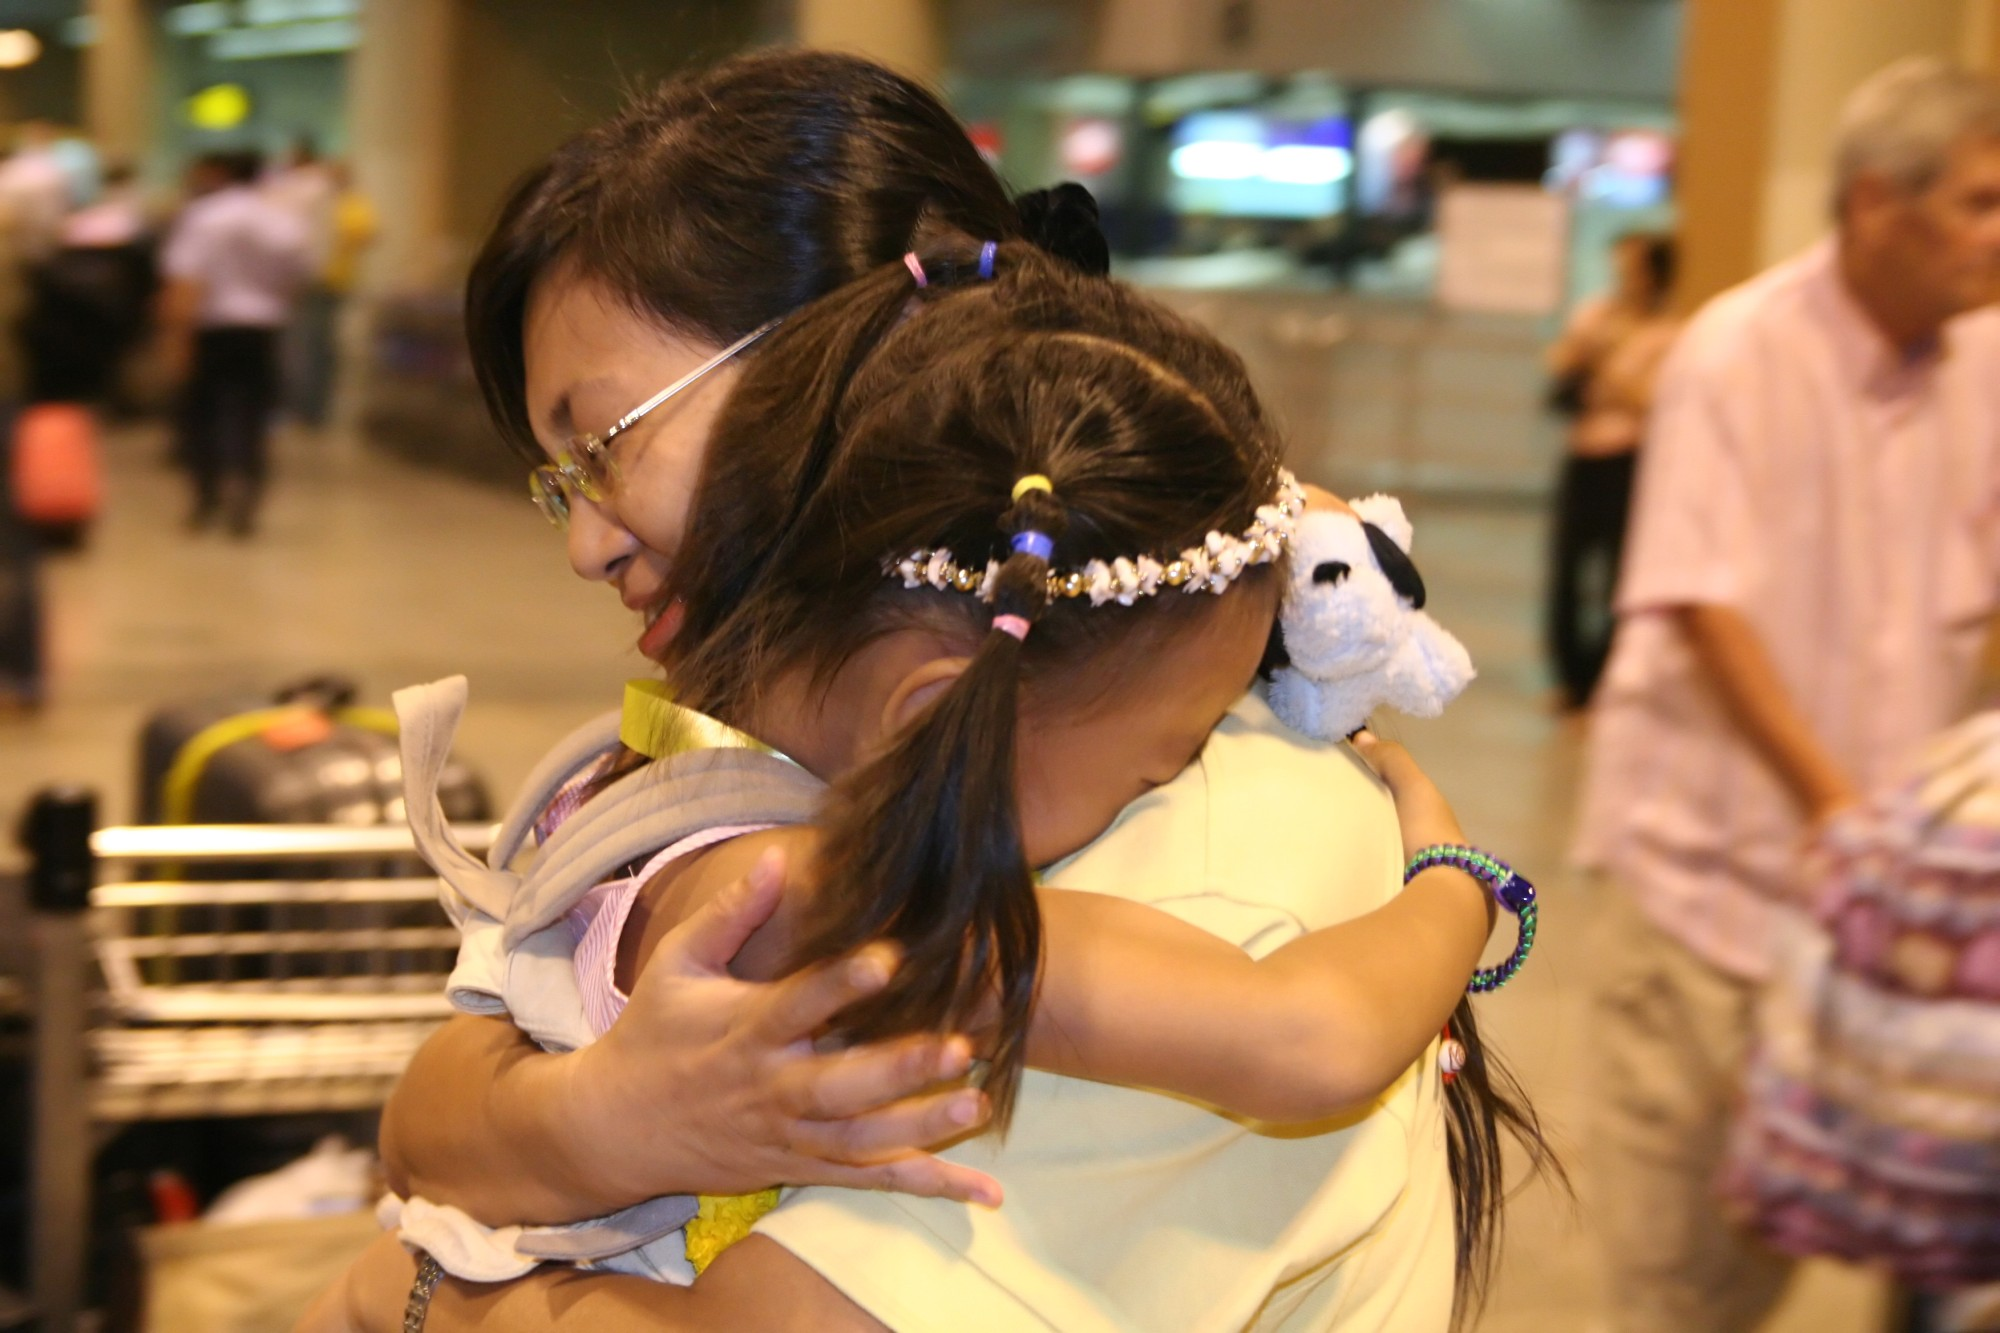 TOGETHER AT LAST: Miao Miao and her 6-year-old daughter Hua Yuchen share a touching moment at Don Muang International Airport in Bangkok on January 23, 2006. They were separated after Miao was imprisoned at the Bangkok Immigration Detension Center following an arrest that many believe was illegal. They flew to asylum in Norway early morning on the 24th. (The Epoch Times)